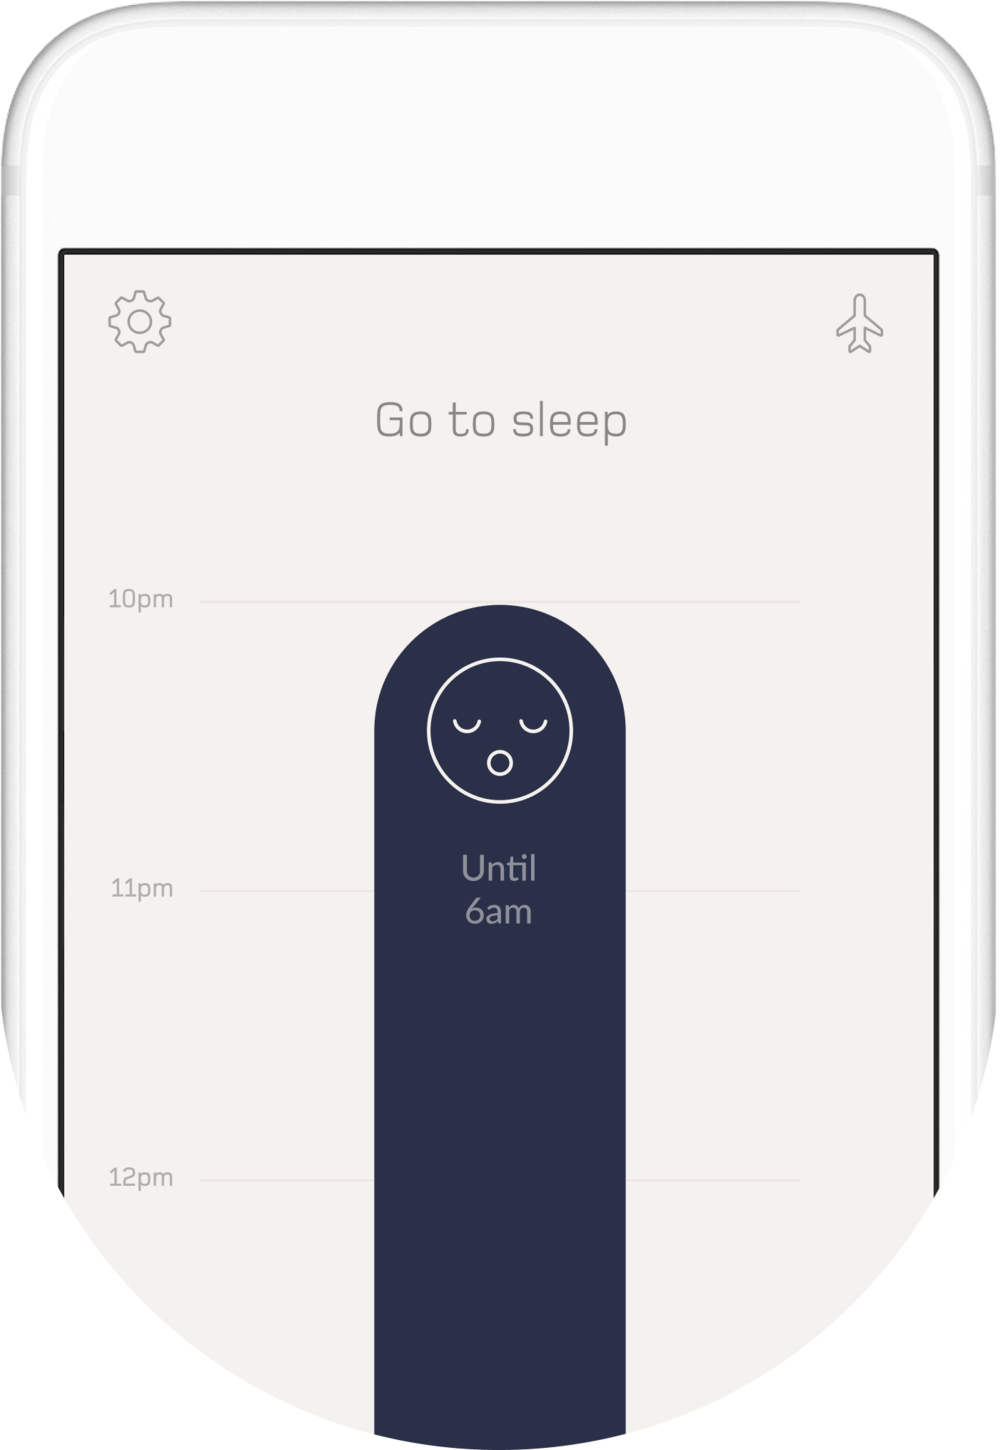 Eliminate jet lag with the Timeshifter app and arrive ready